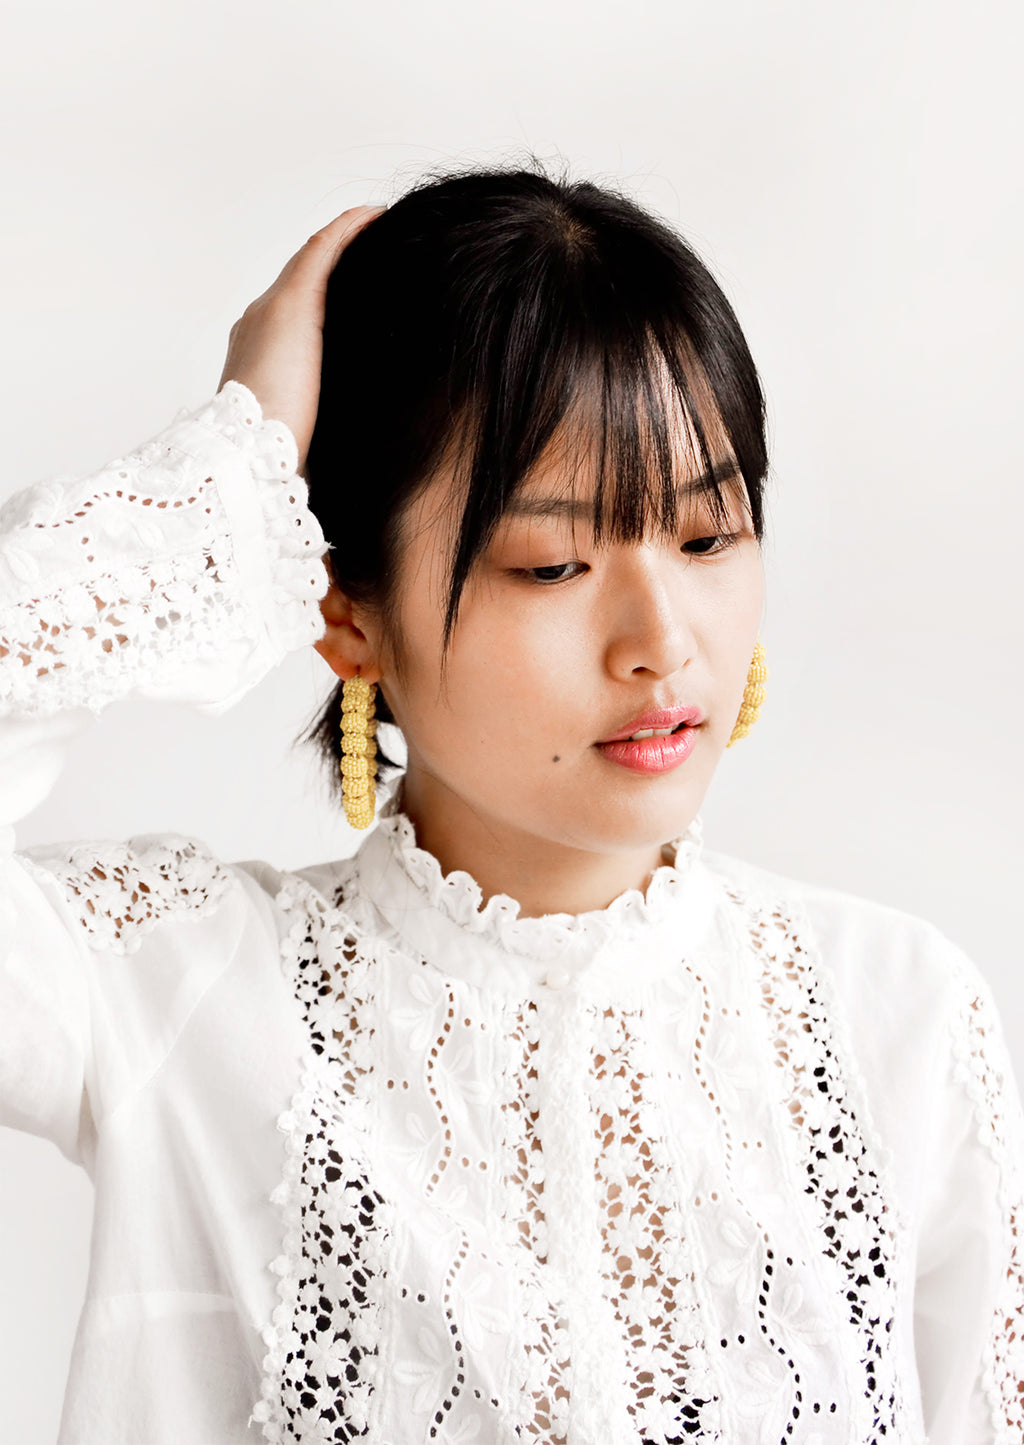 2: Model shot of woman wearing earrings and white top.